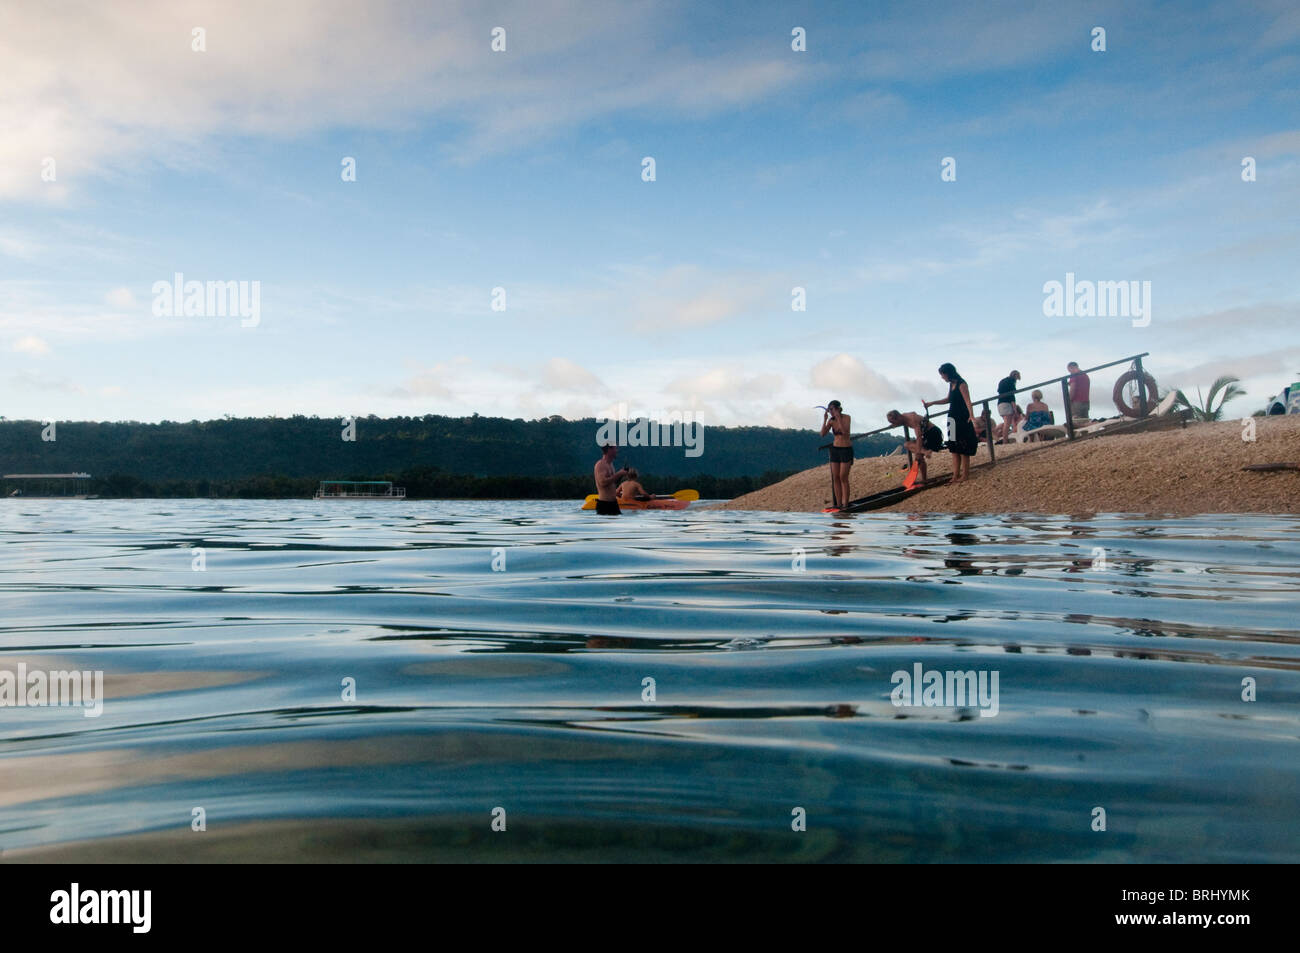 Family at waters edge on hideaway island, about to go snorkeling. - Stock Image